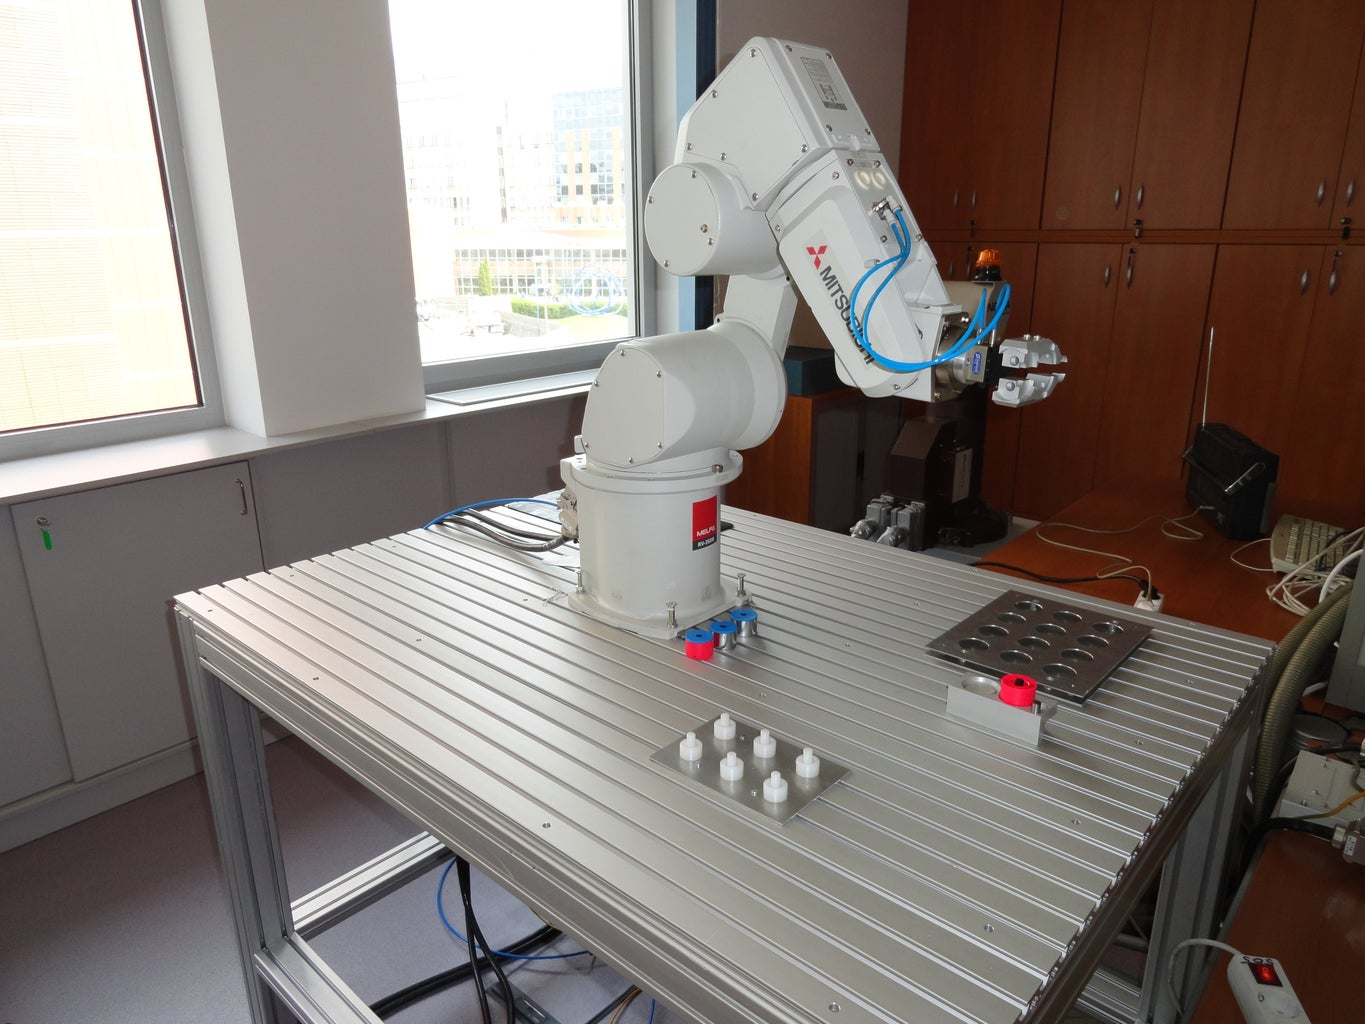 The Robot Without Work Station